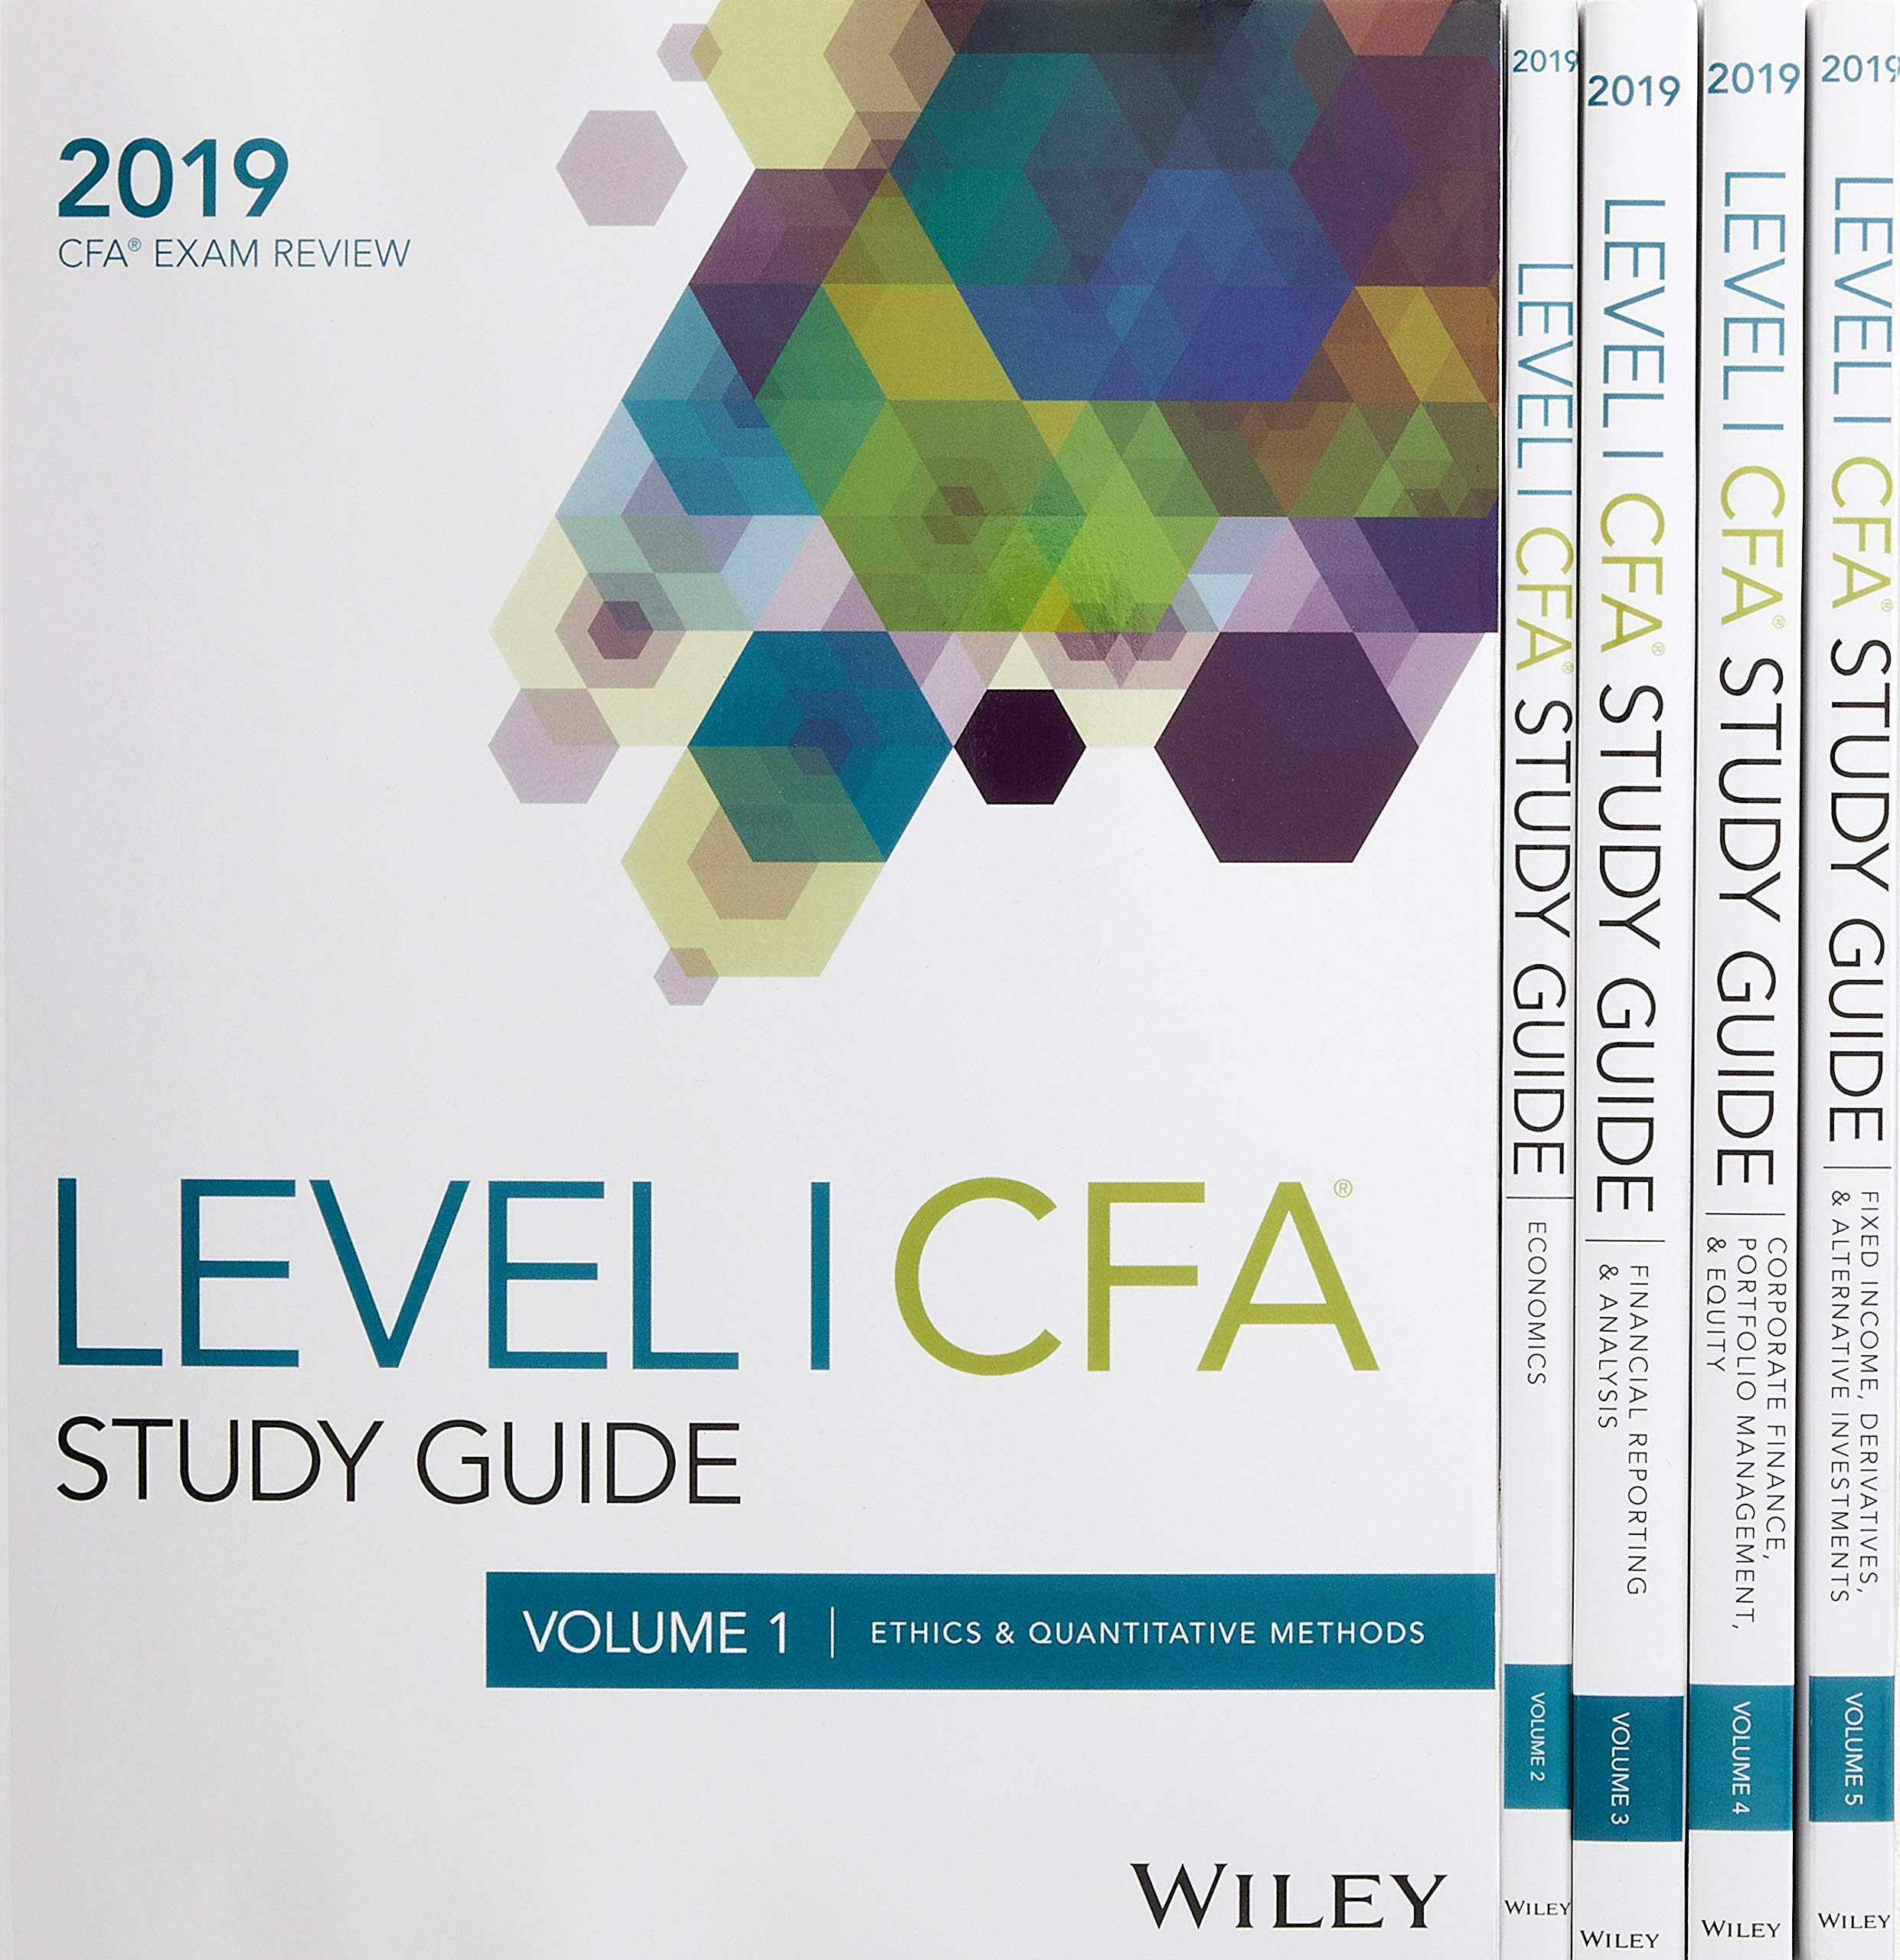 Wiley Study Guide for 2019 Level I CFA Exam: Complete Set